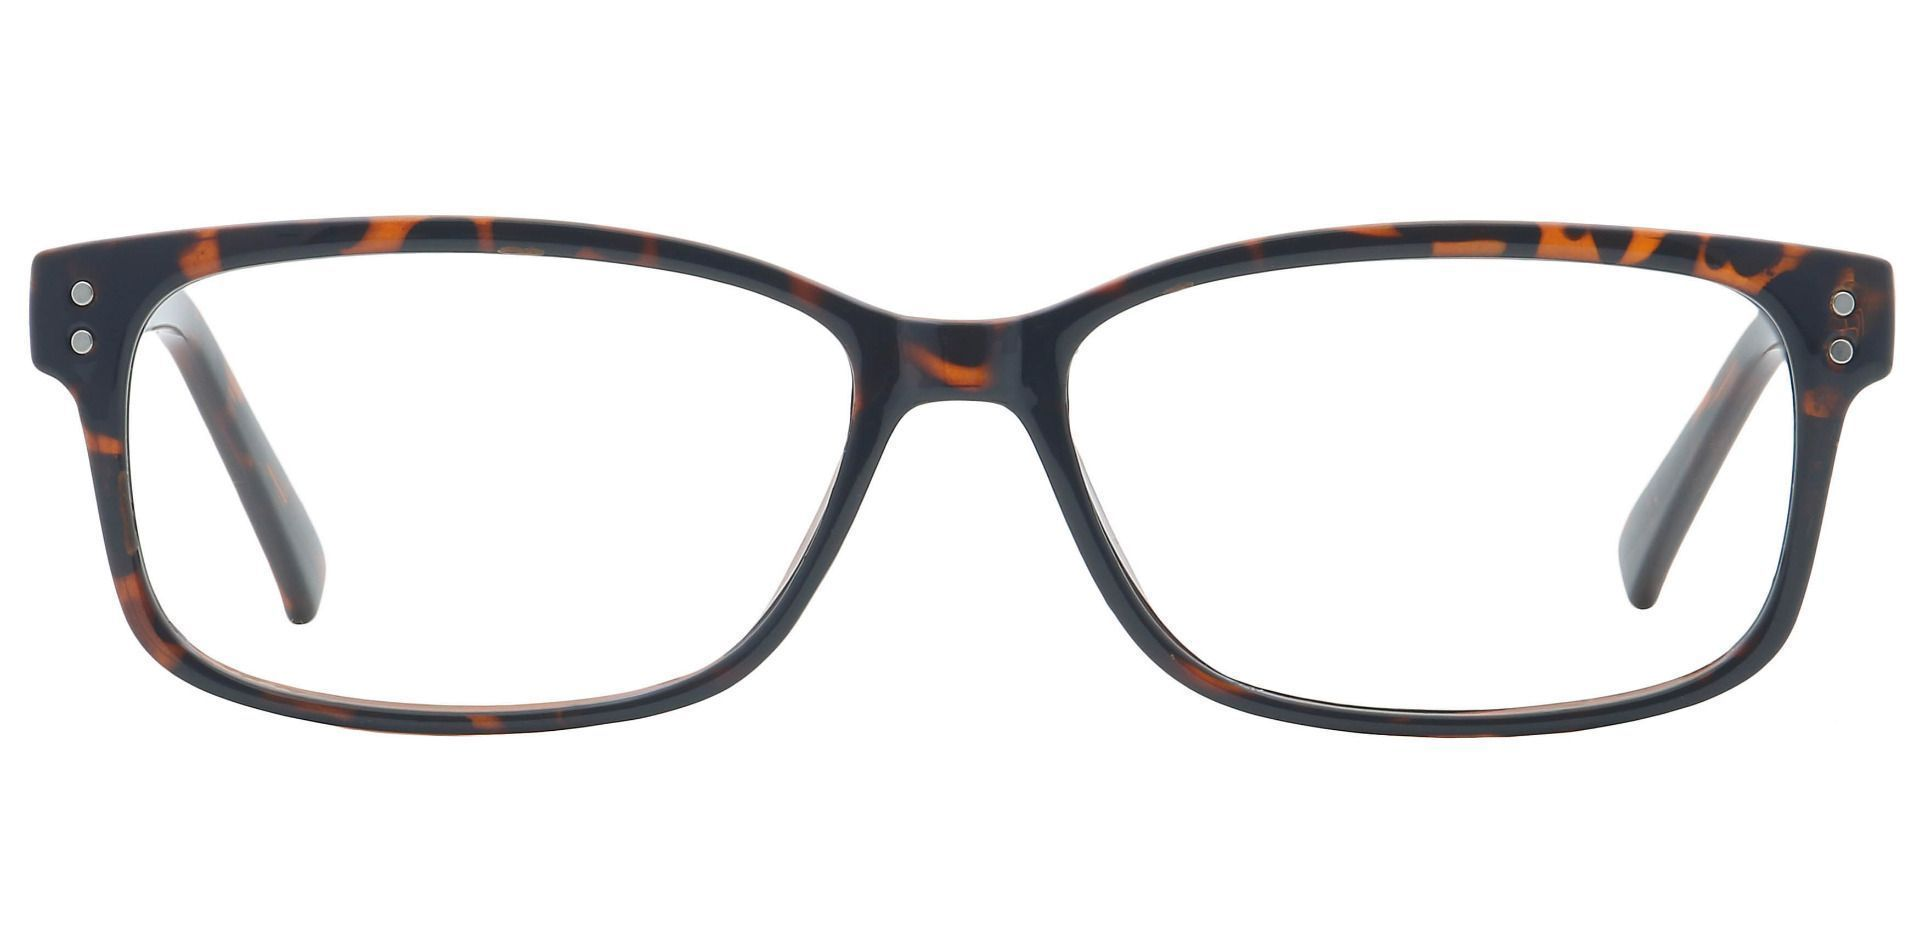 Krissy Oval Prescription Glasses - Dark Tortoise